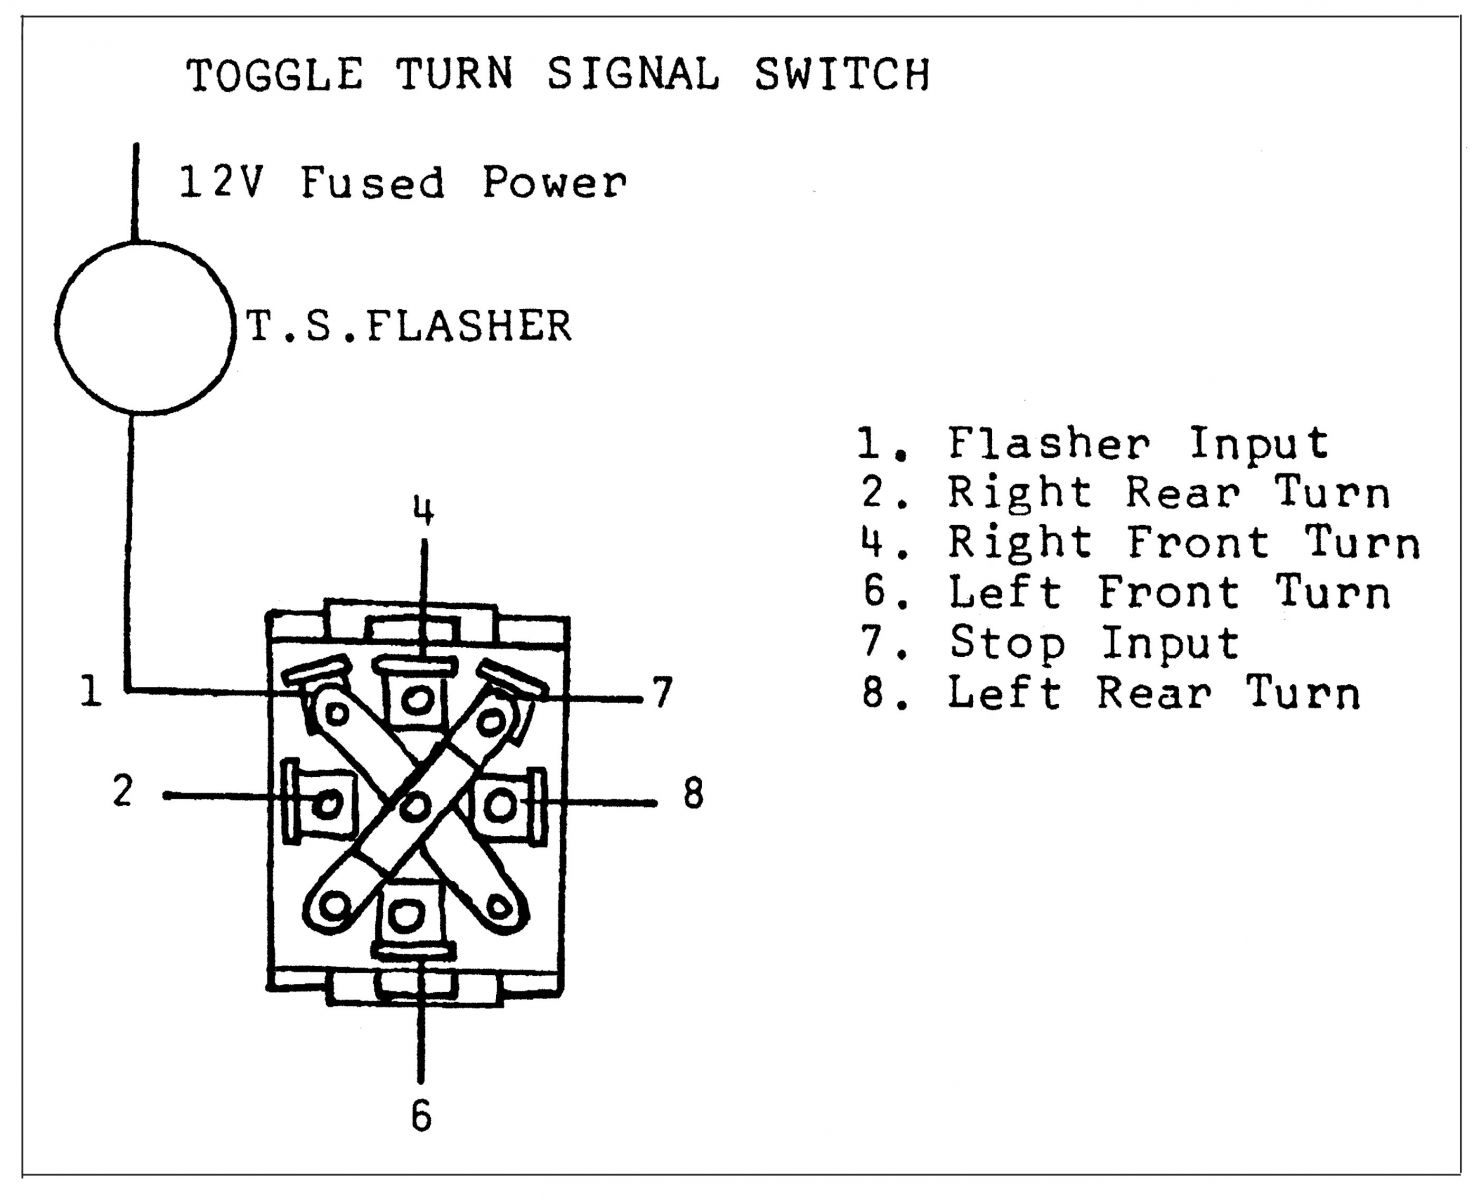 hight resolution of turn signals for early hot rods hotrod hotlinemy vehicle has a gm style fuse block with